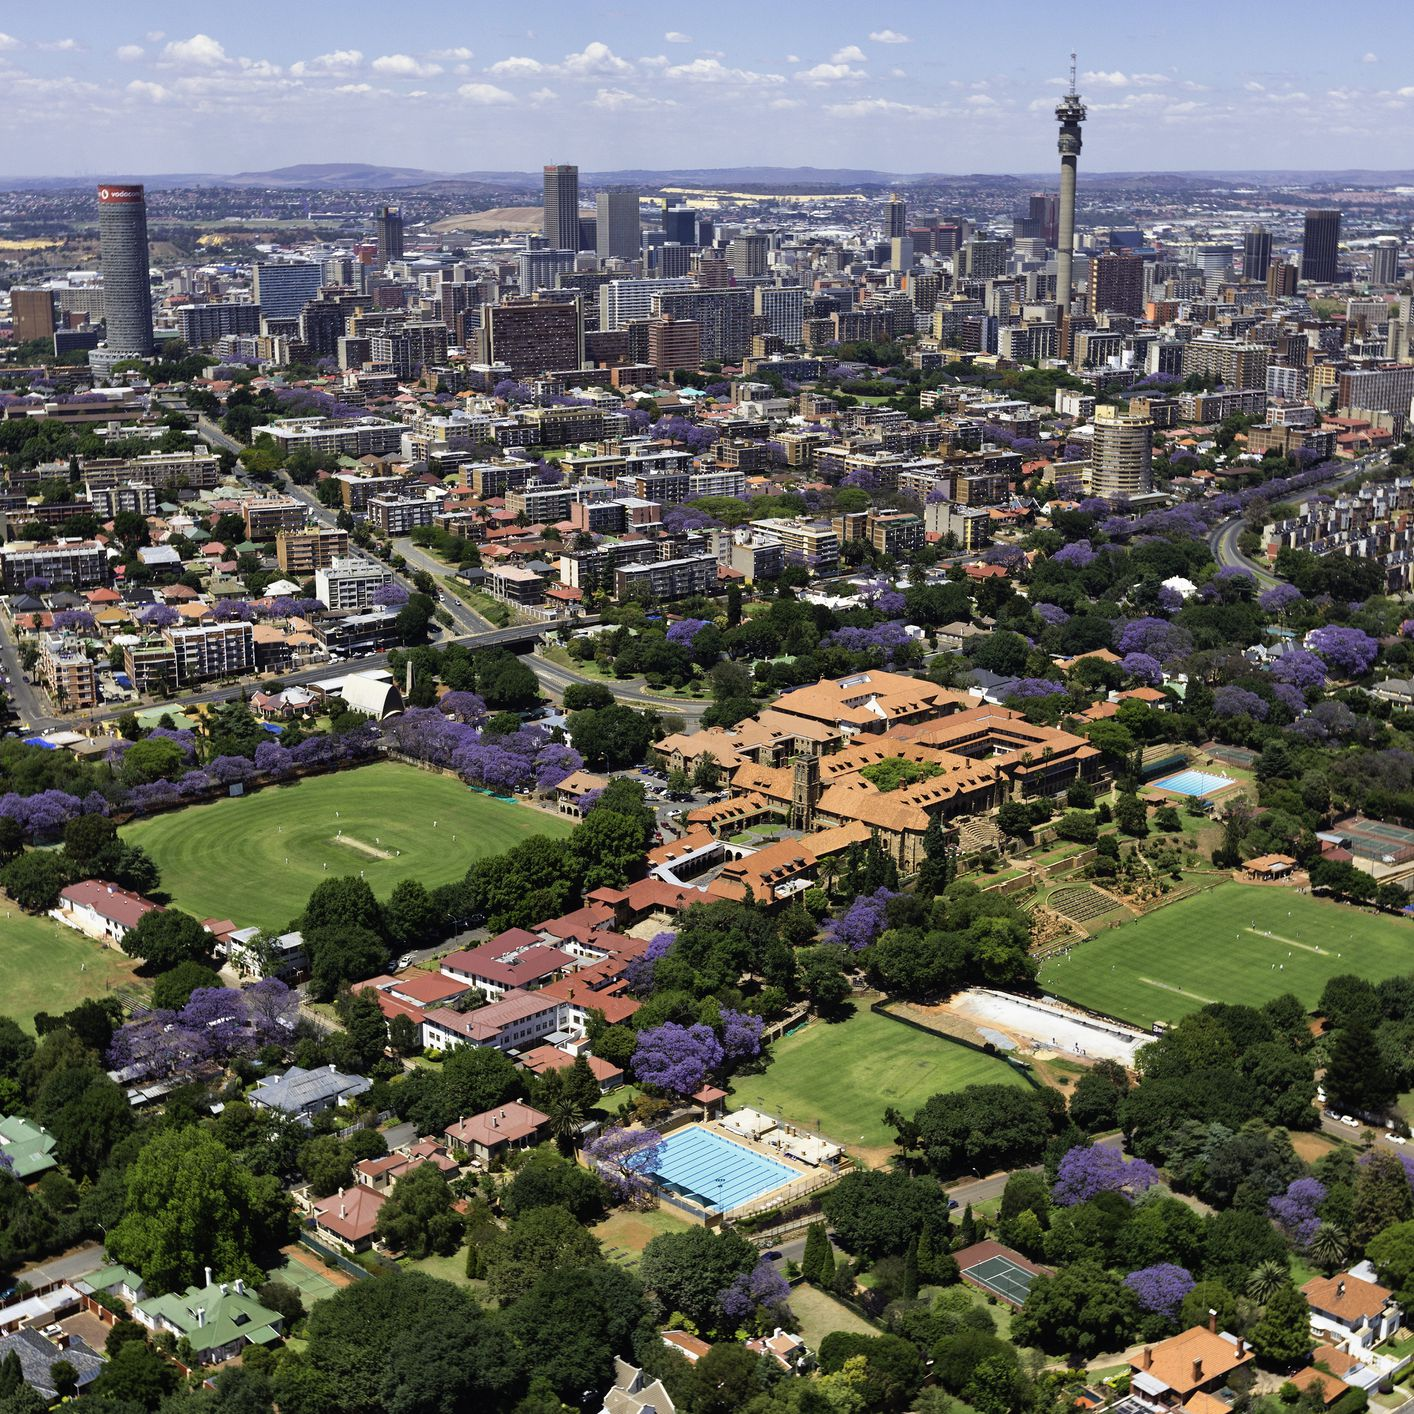 The Best Time to Visit Johannesburg